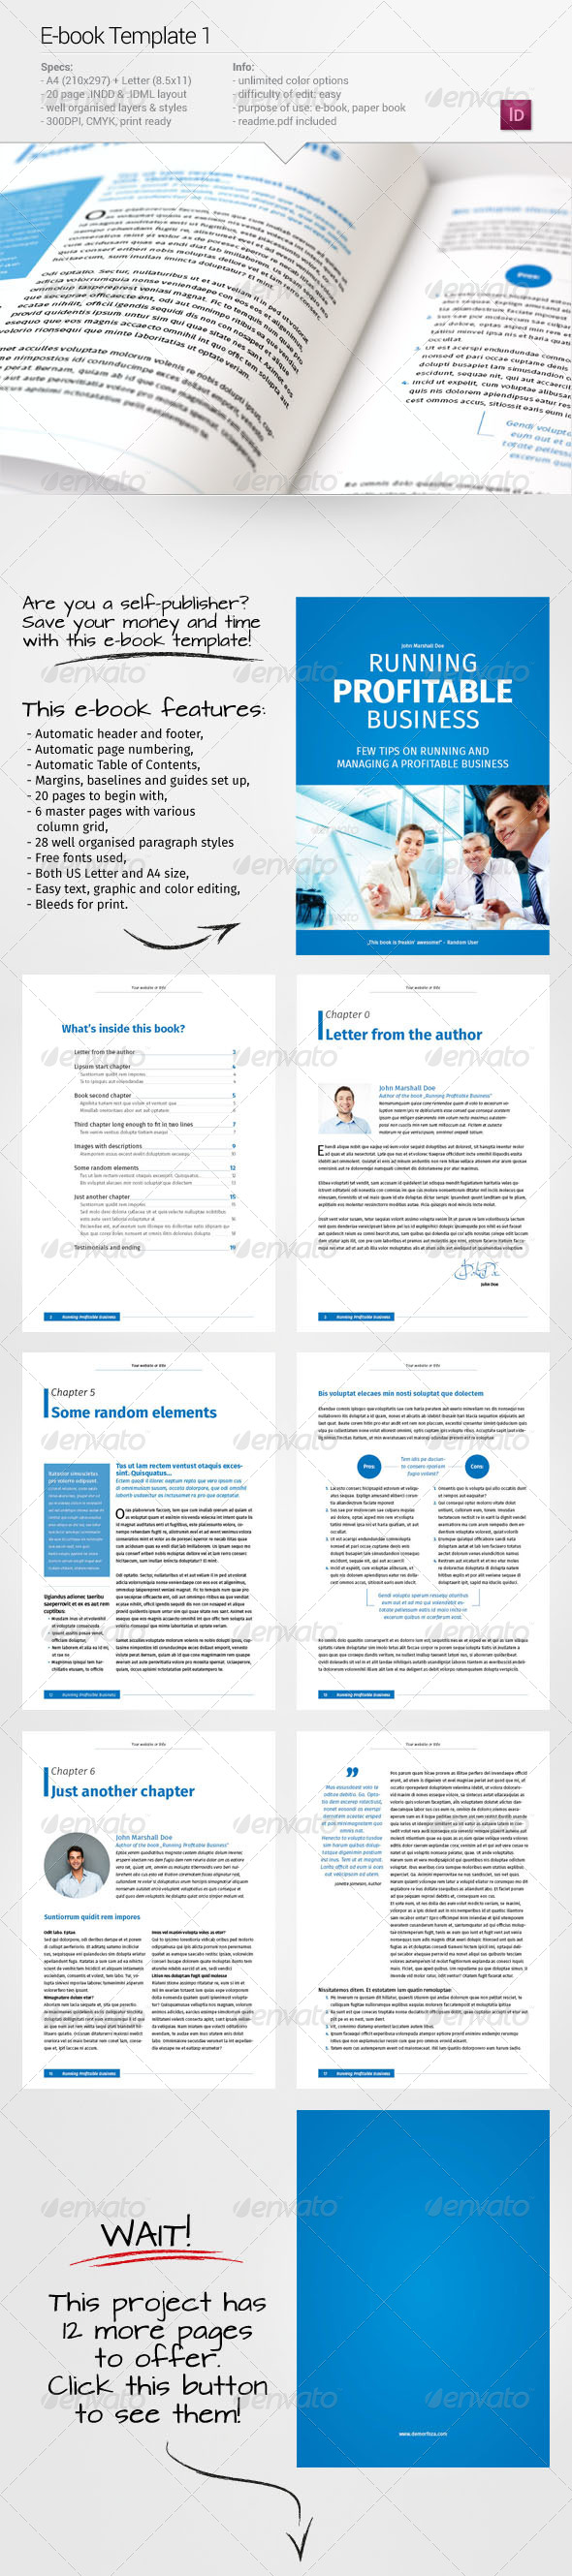 GraphicRiver E-book Template 1 6746653